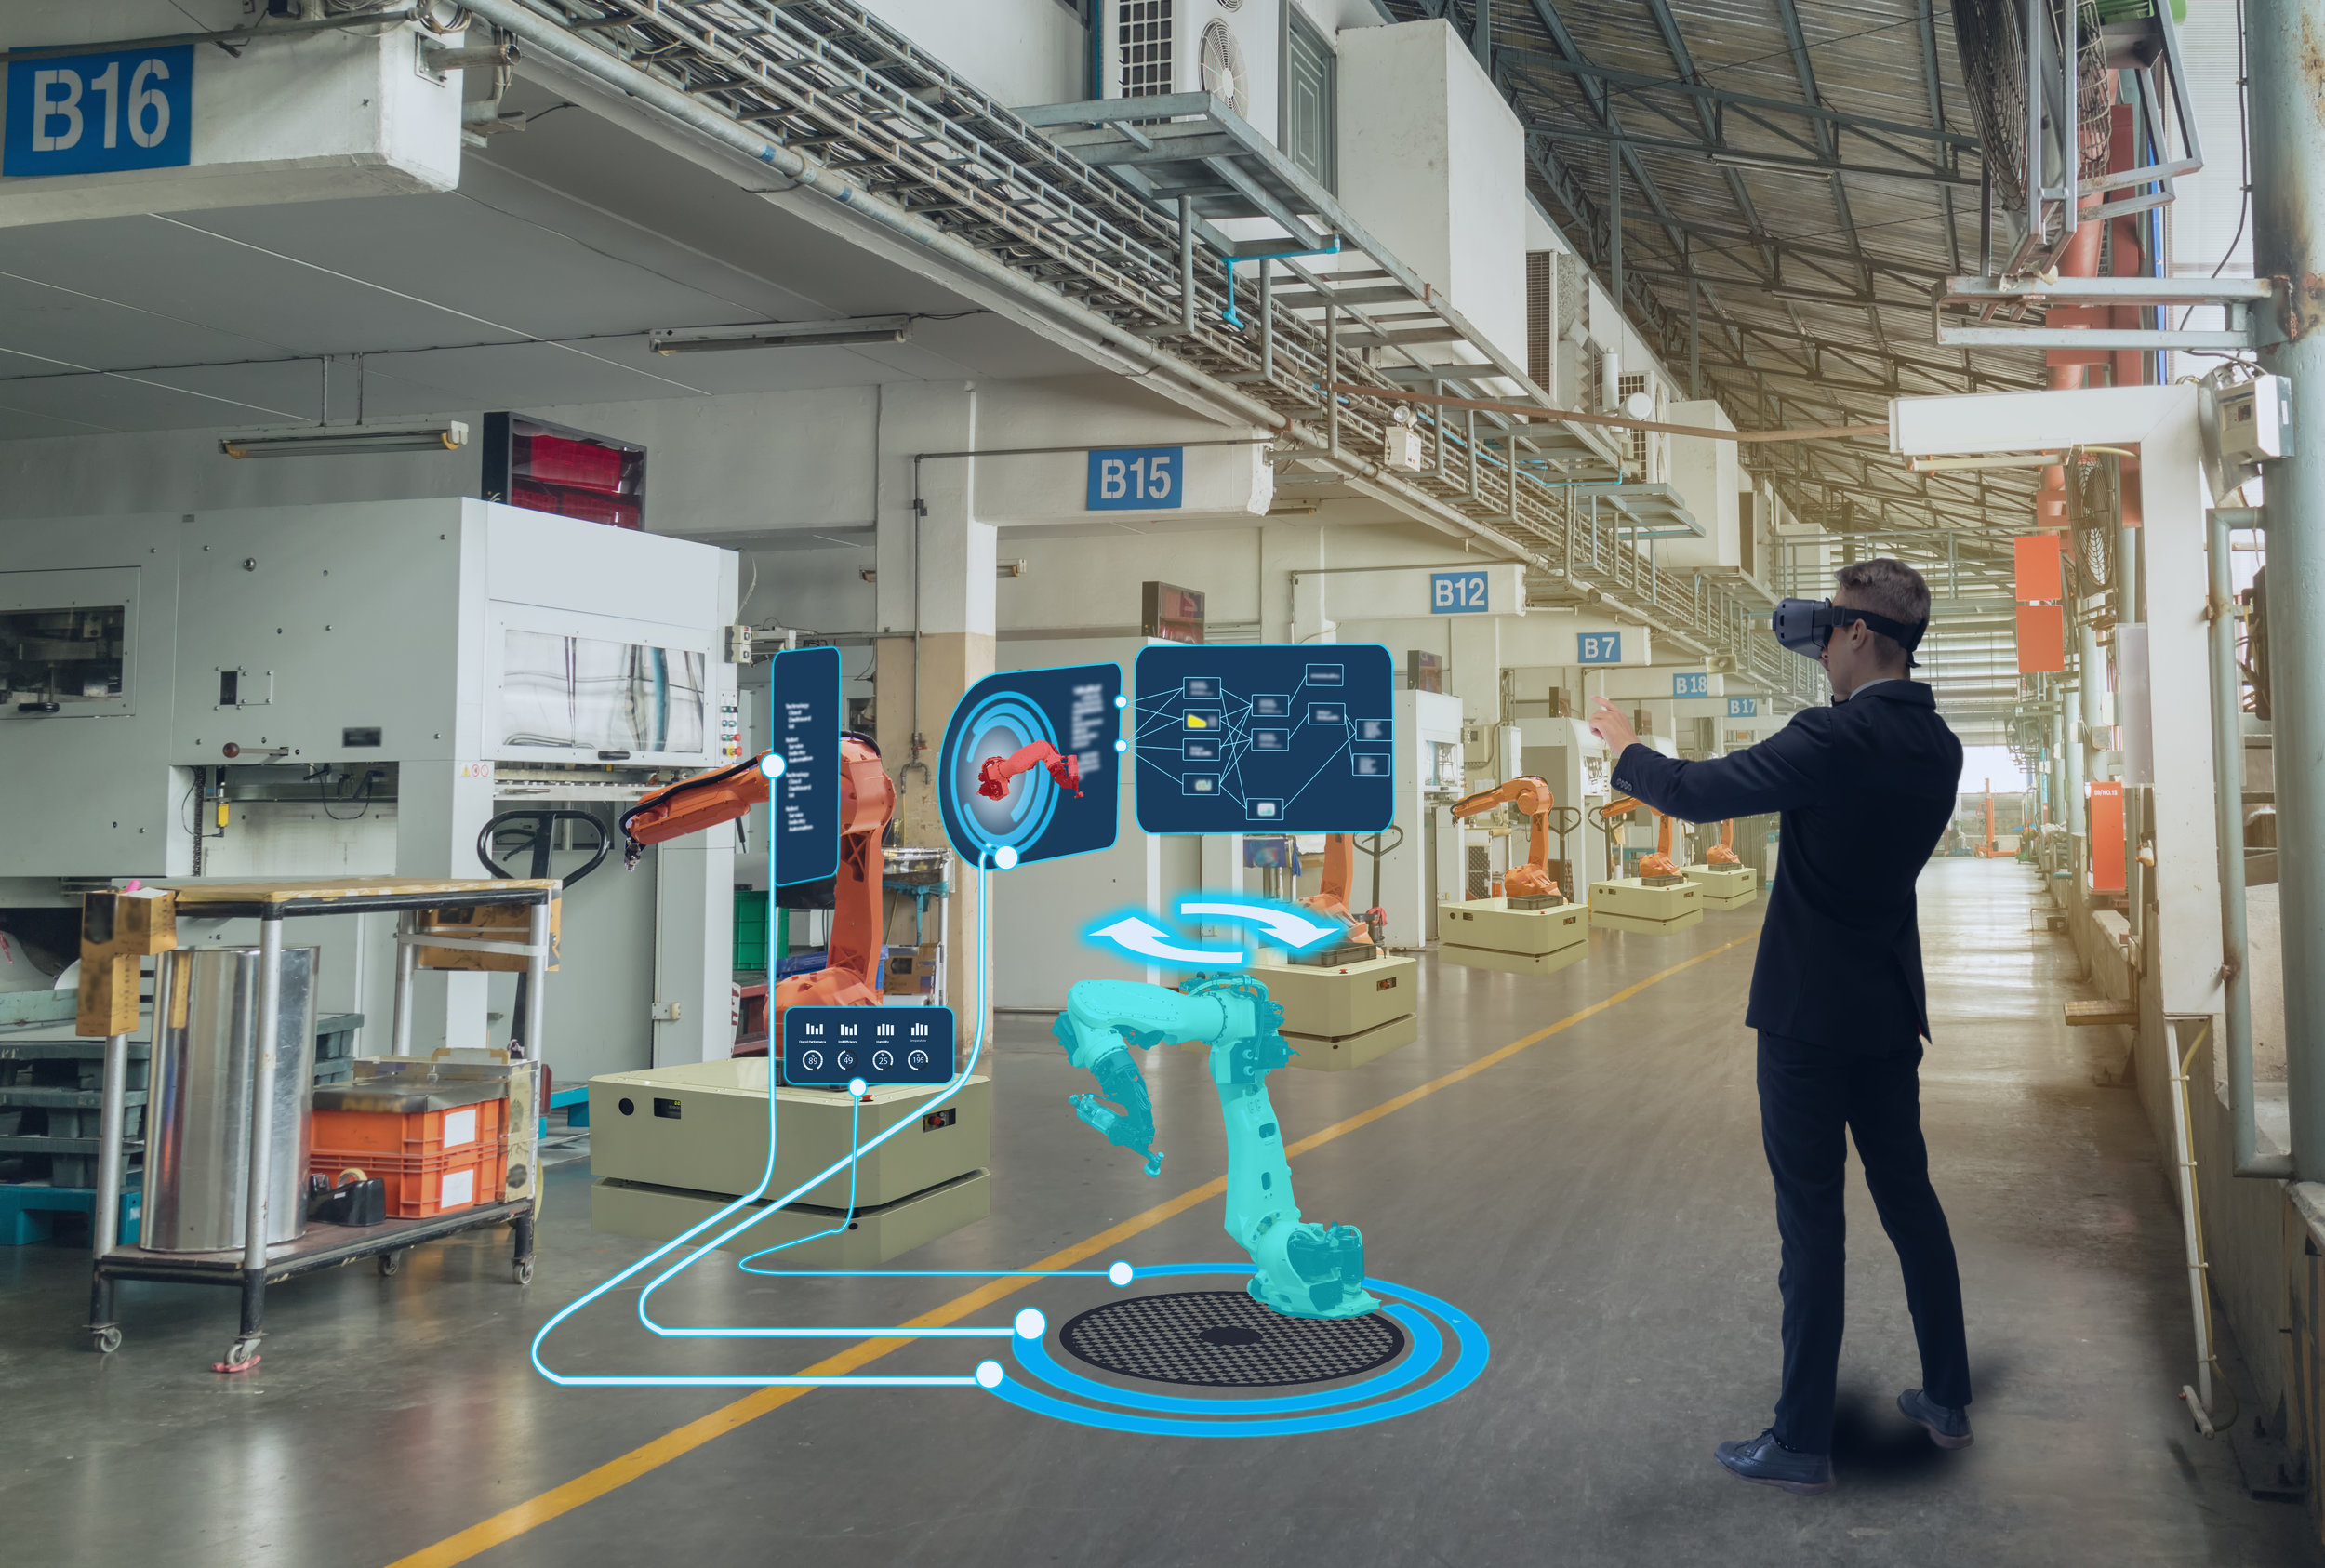 Immersive technical training - best suited to hands free mixed reality tools. This provides an overview of each technical area a worker will be working. This can include mixed reality immersion, such as virtual reality or augmented reality.